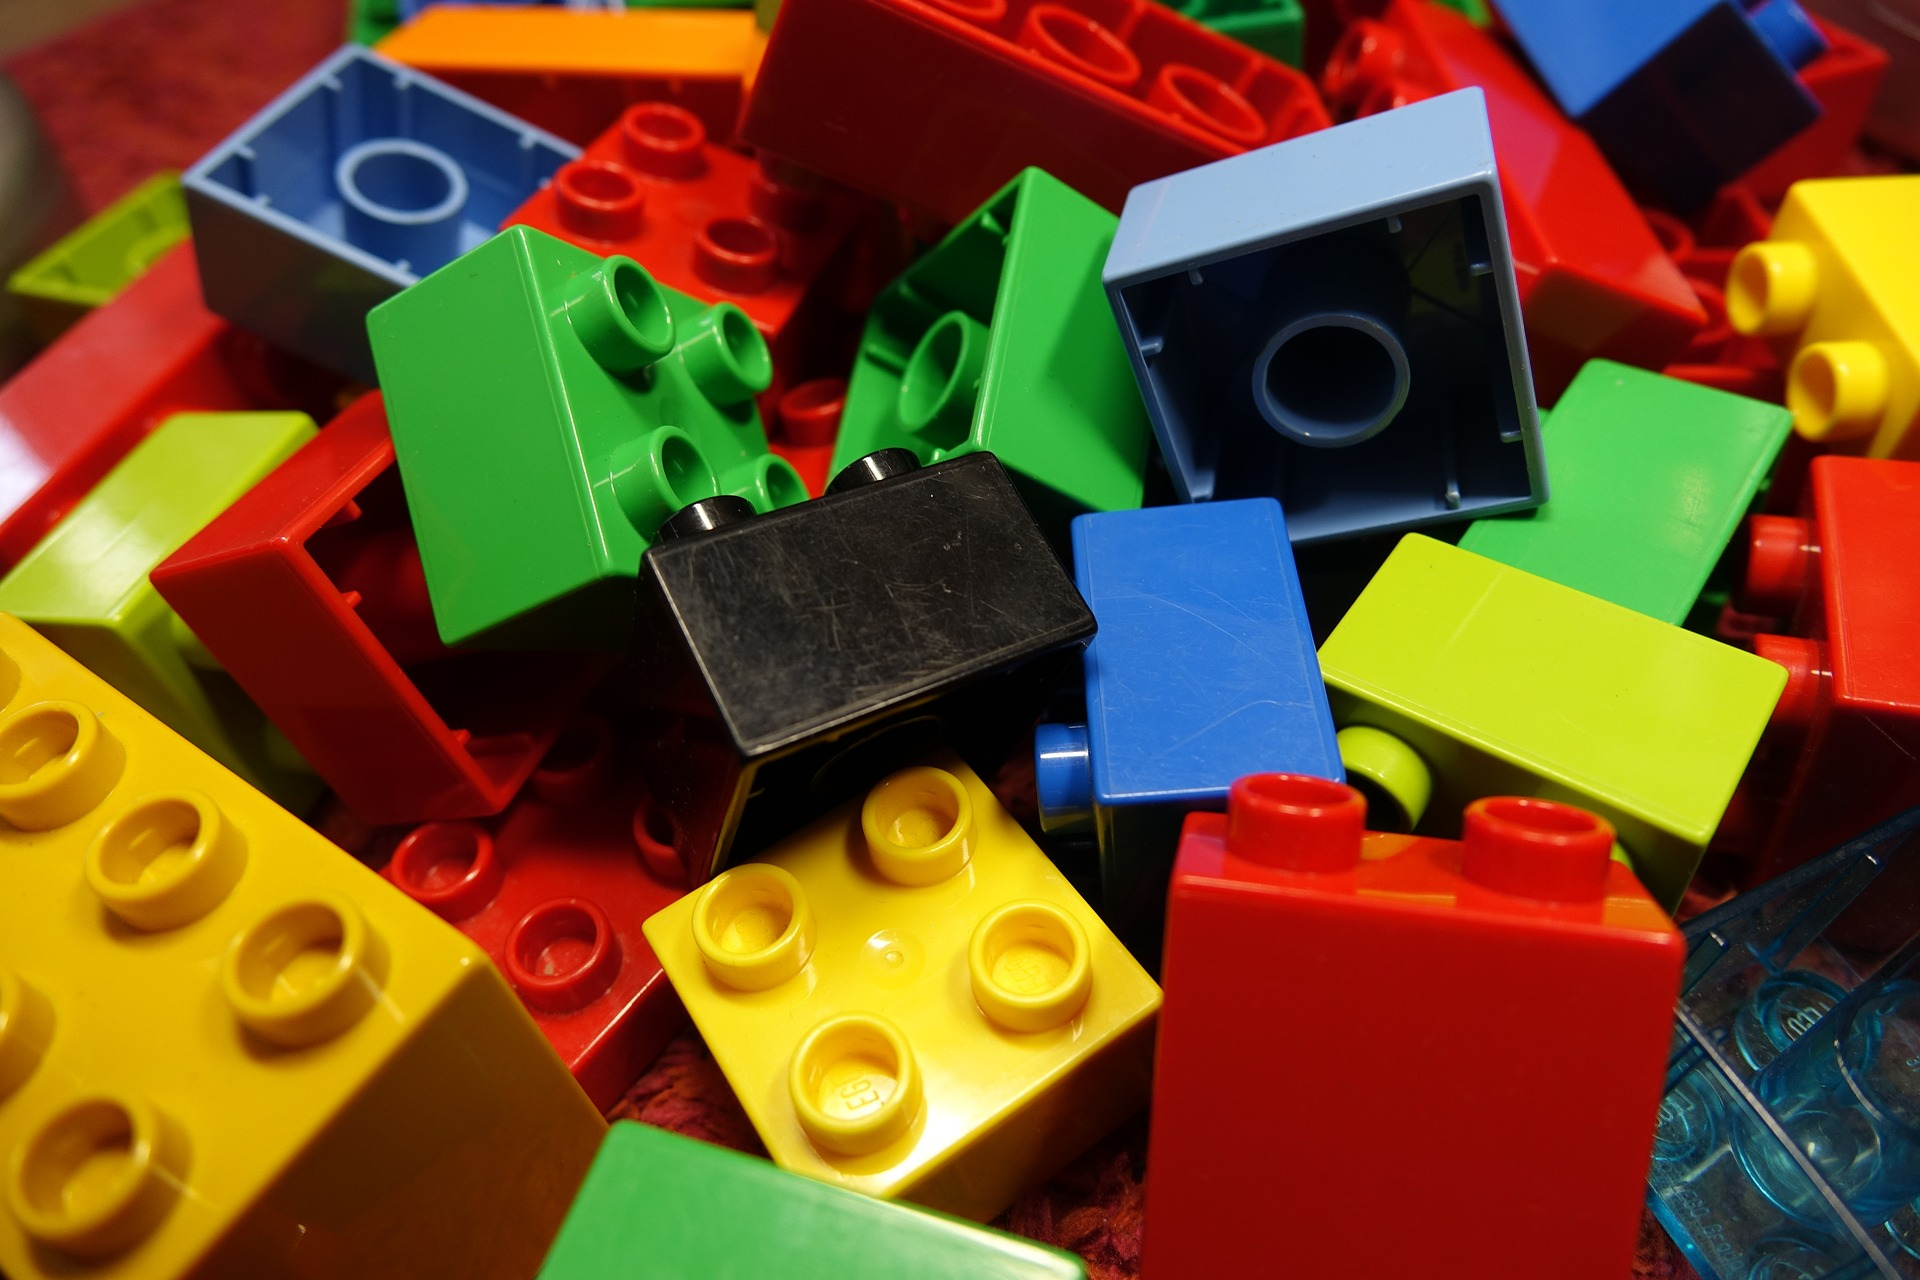 Drop - In Lego Time!